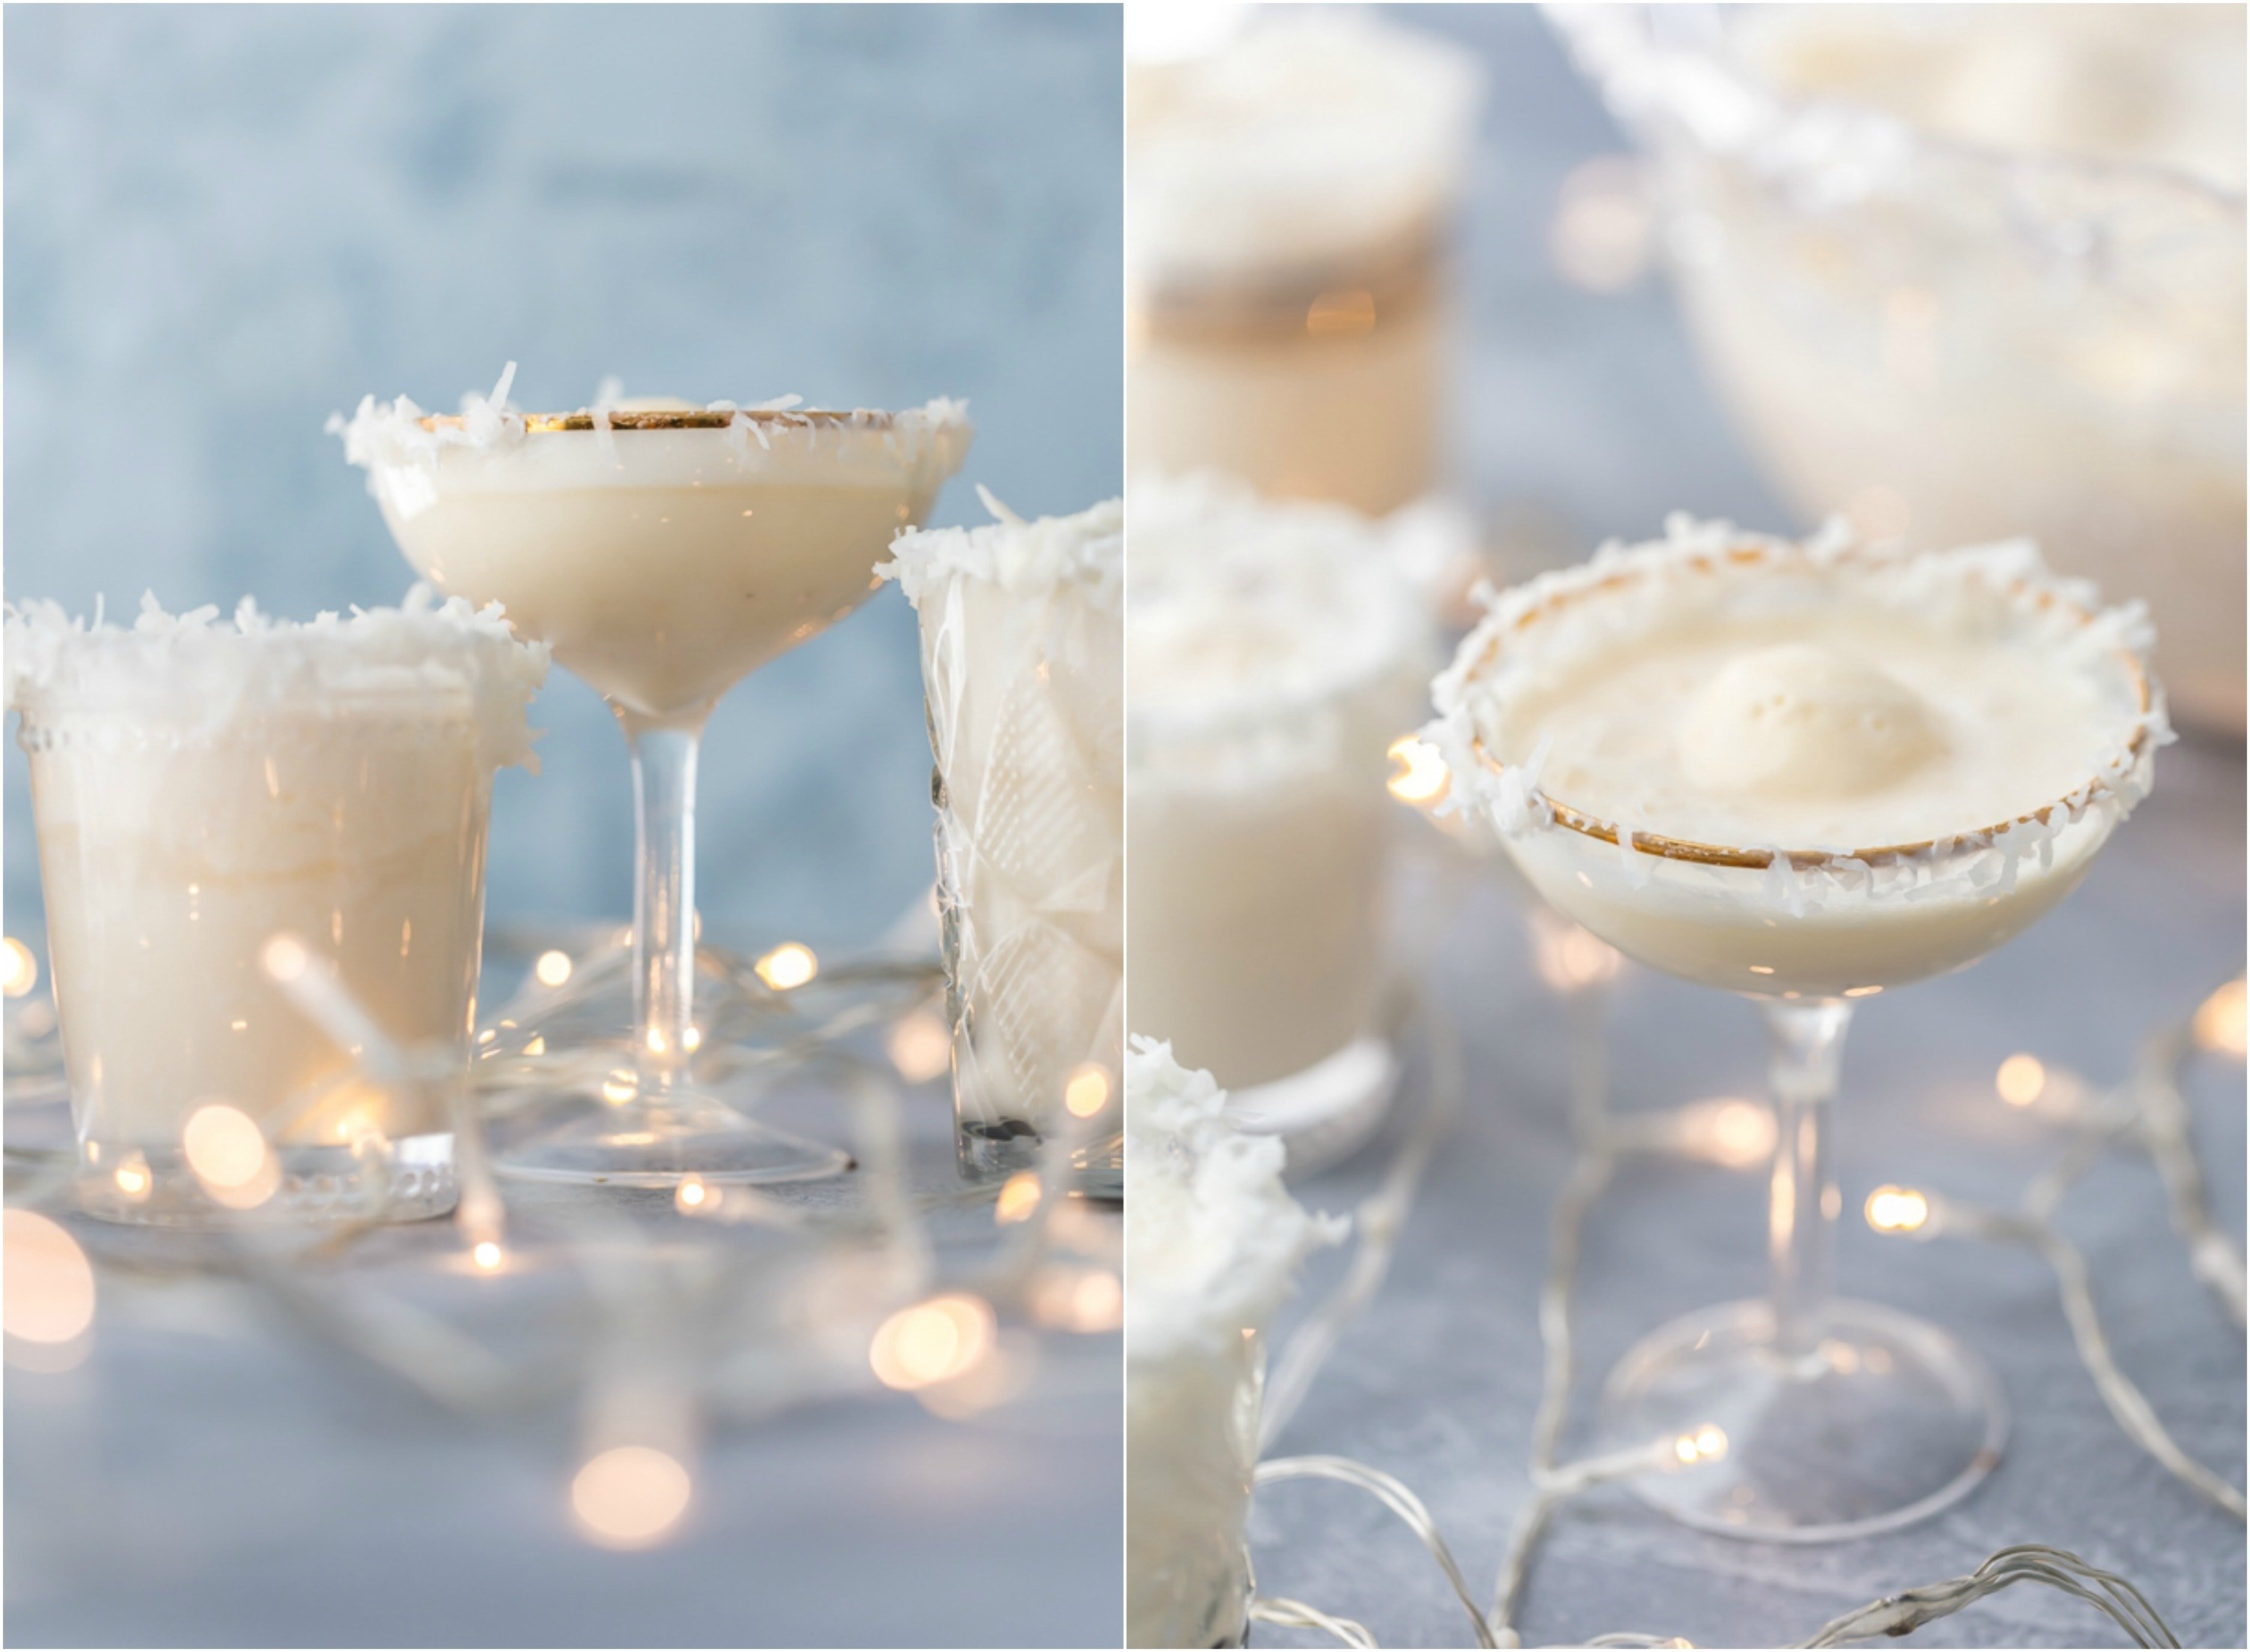 glasses of festive SNOW PUNCH Christmas mocktails. Glass rims garnished with vanilla frosting and shredded coconut